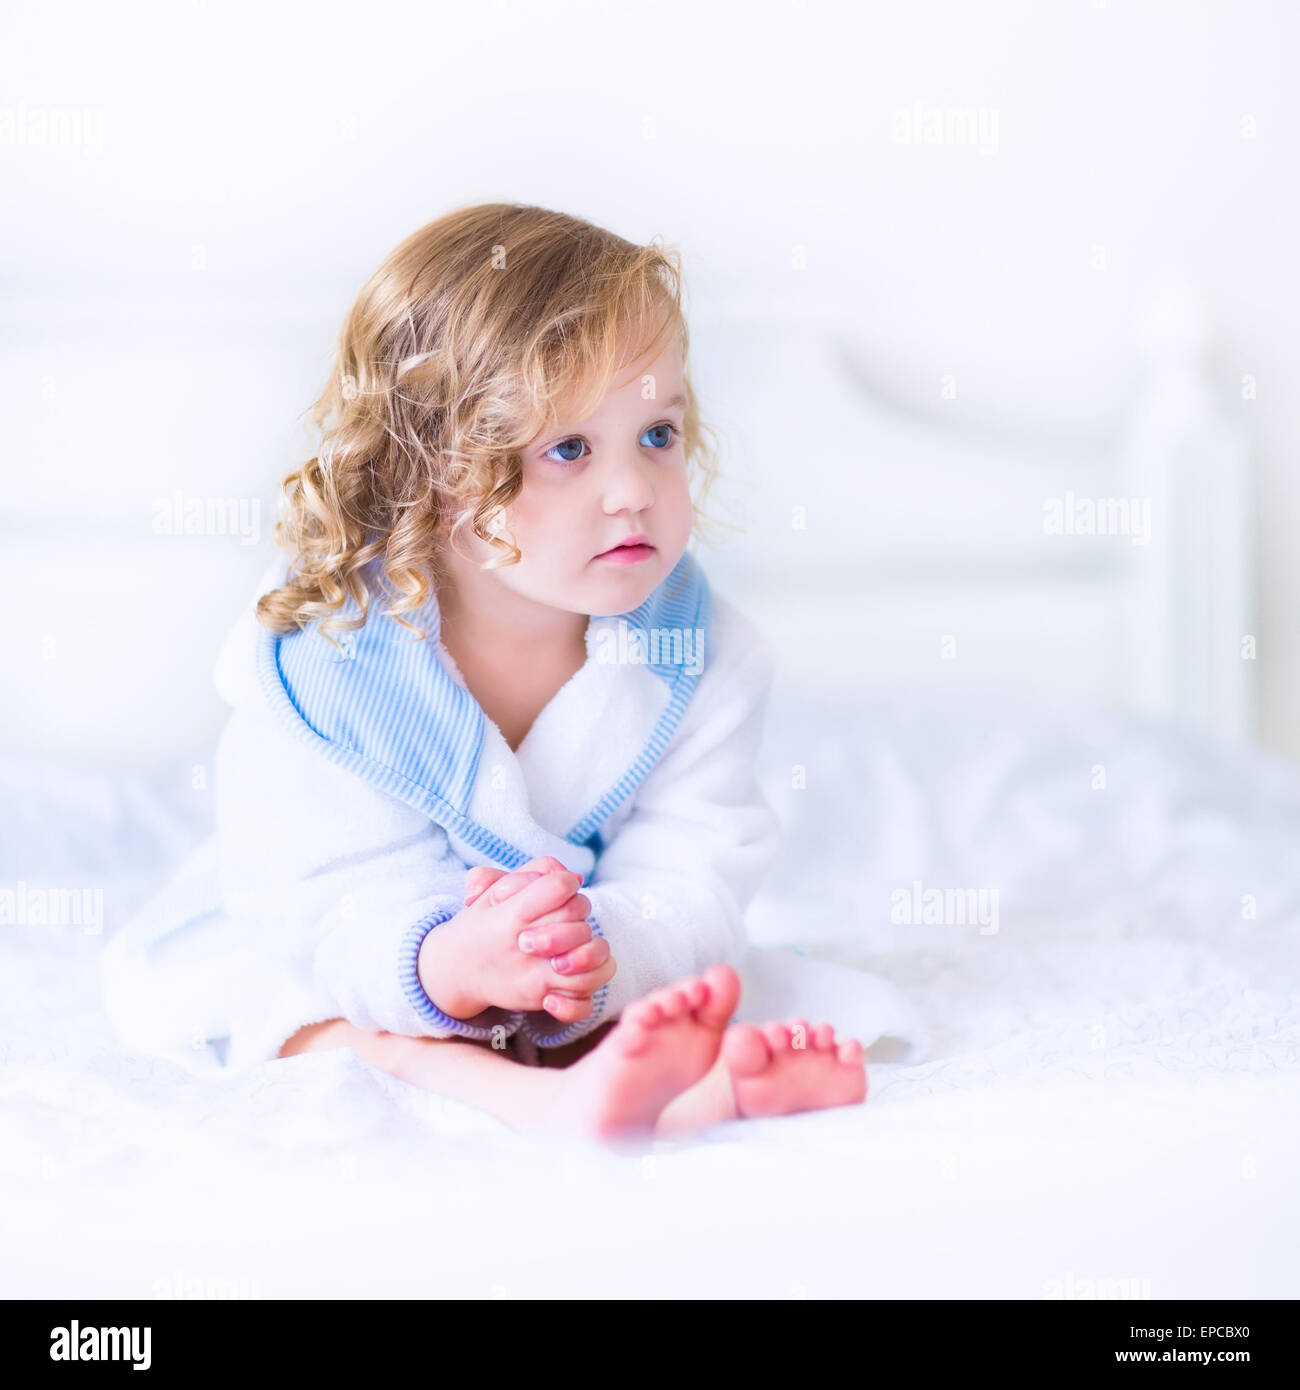 Cute curly little girl in a white and blue bathrobe with a towel over her wet hair siting in a sunny bedroom after - Stock Image